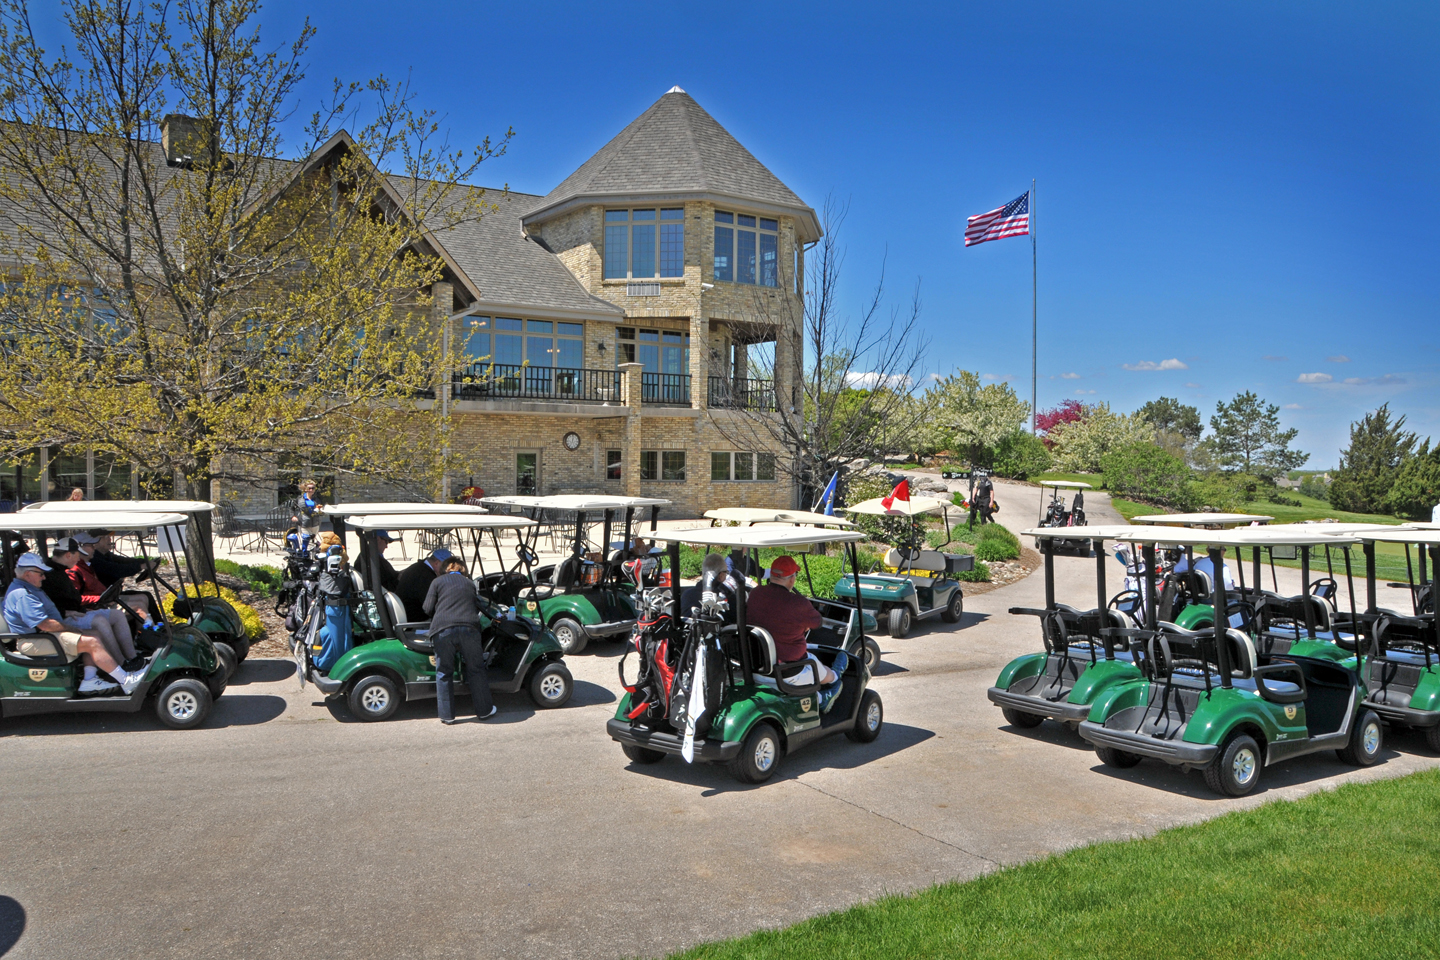 2016 Scholarship Golf Outing at Ironwood Golf Course